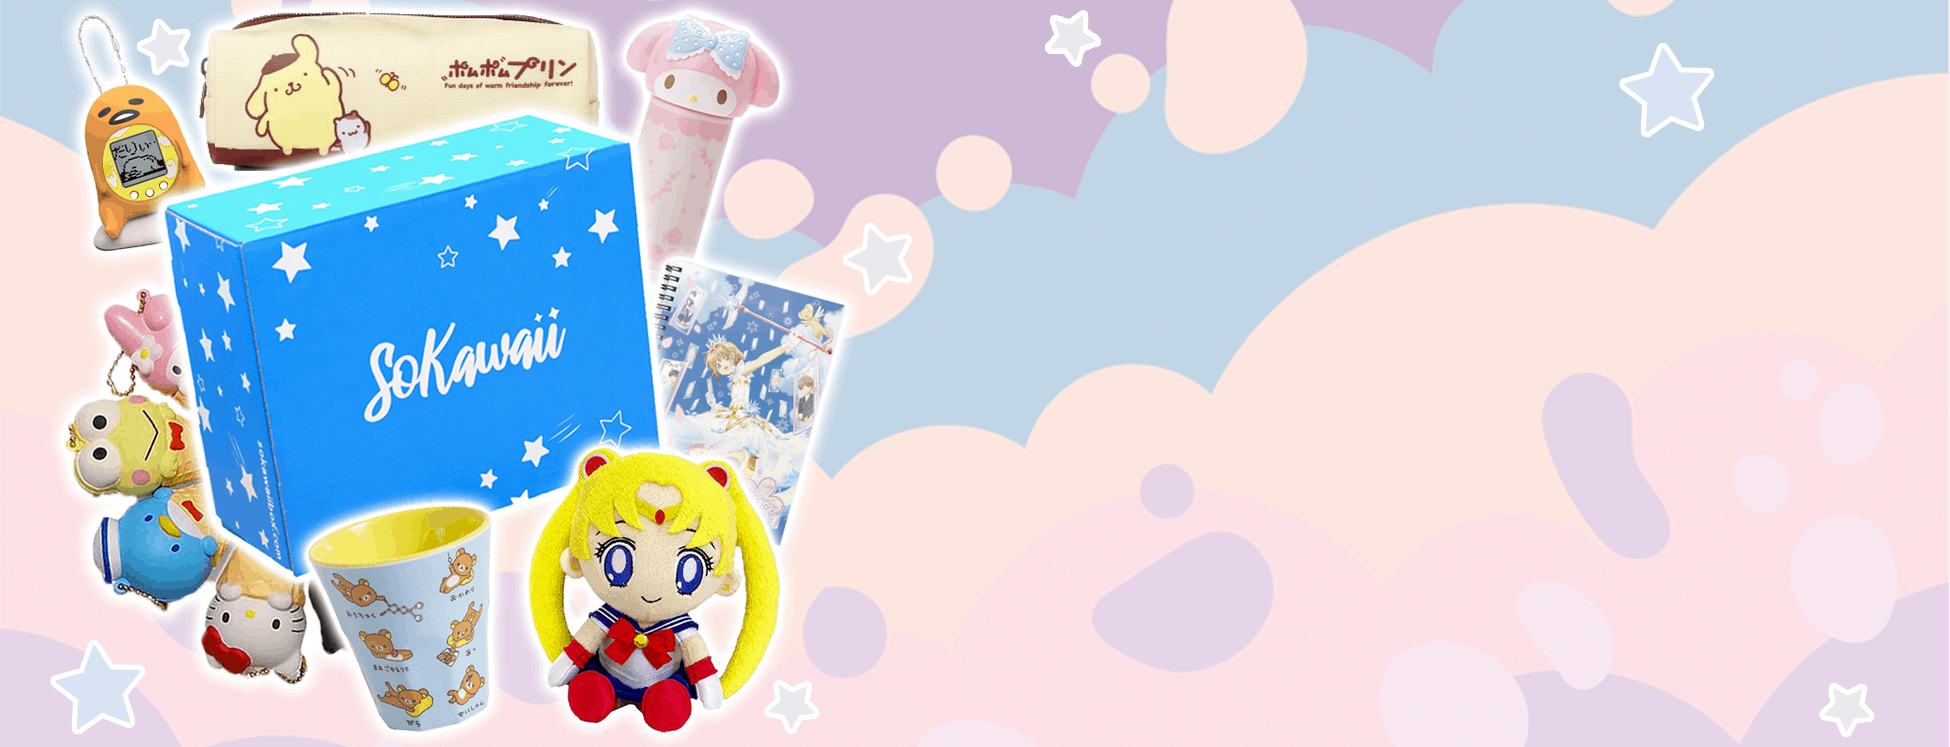 New Subscription Boxes: SoKawaii Available Now + July 2019 Theme Spoilers + Coupon!